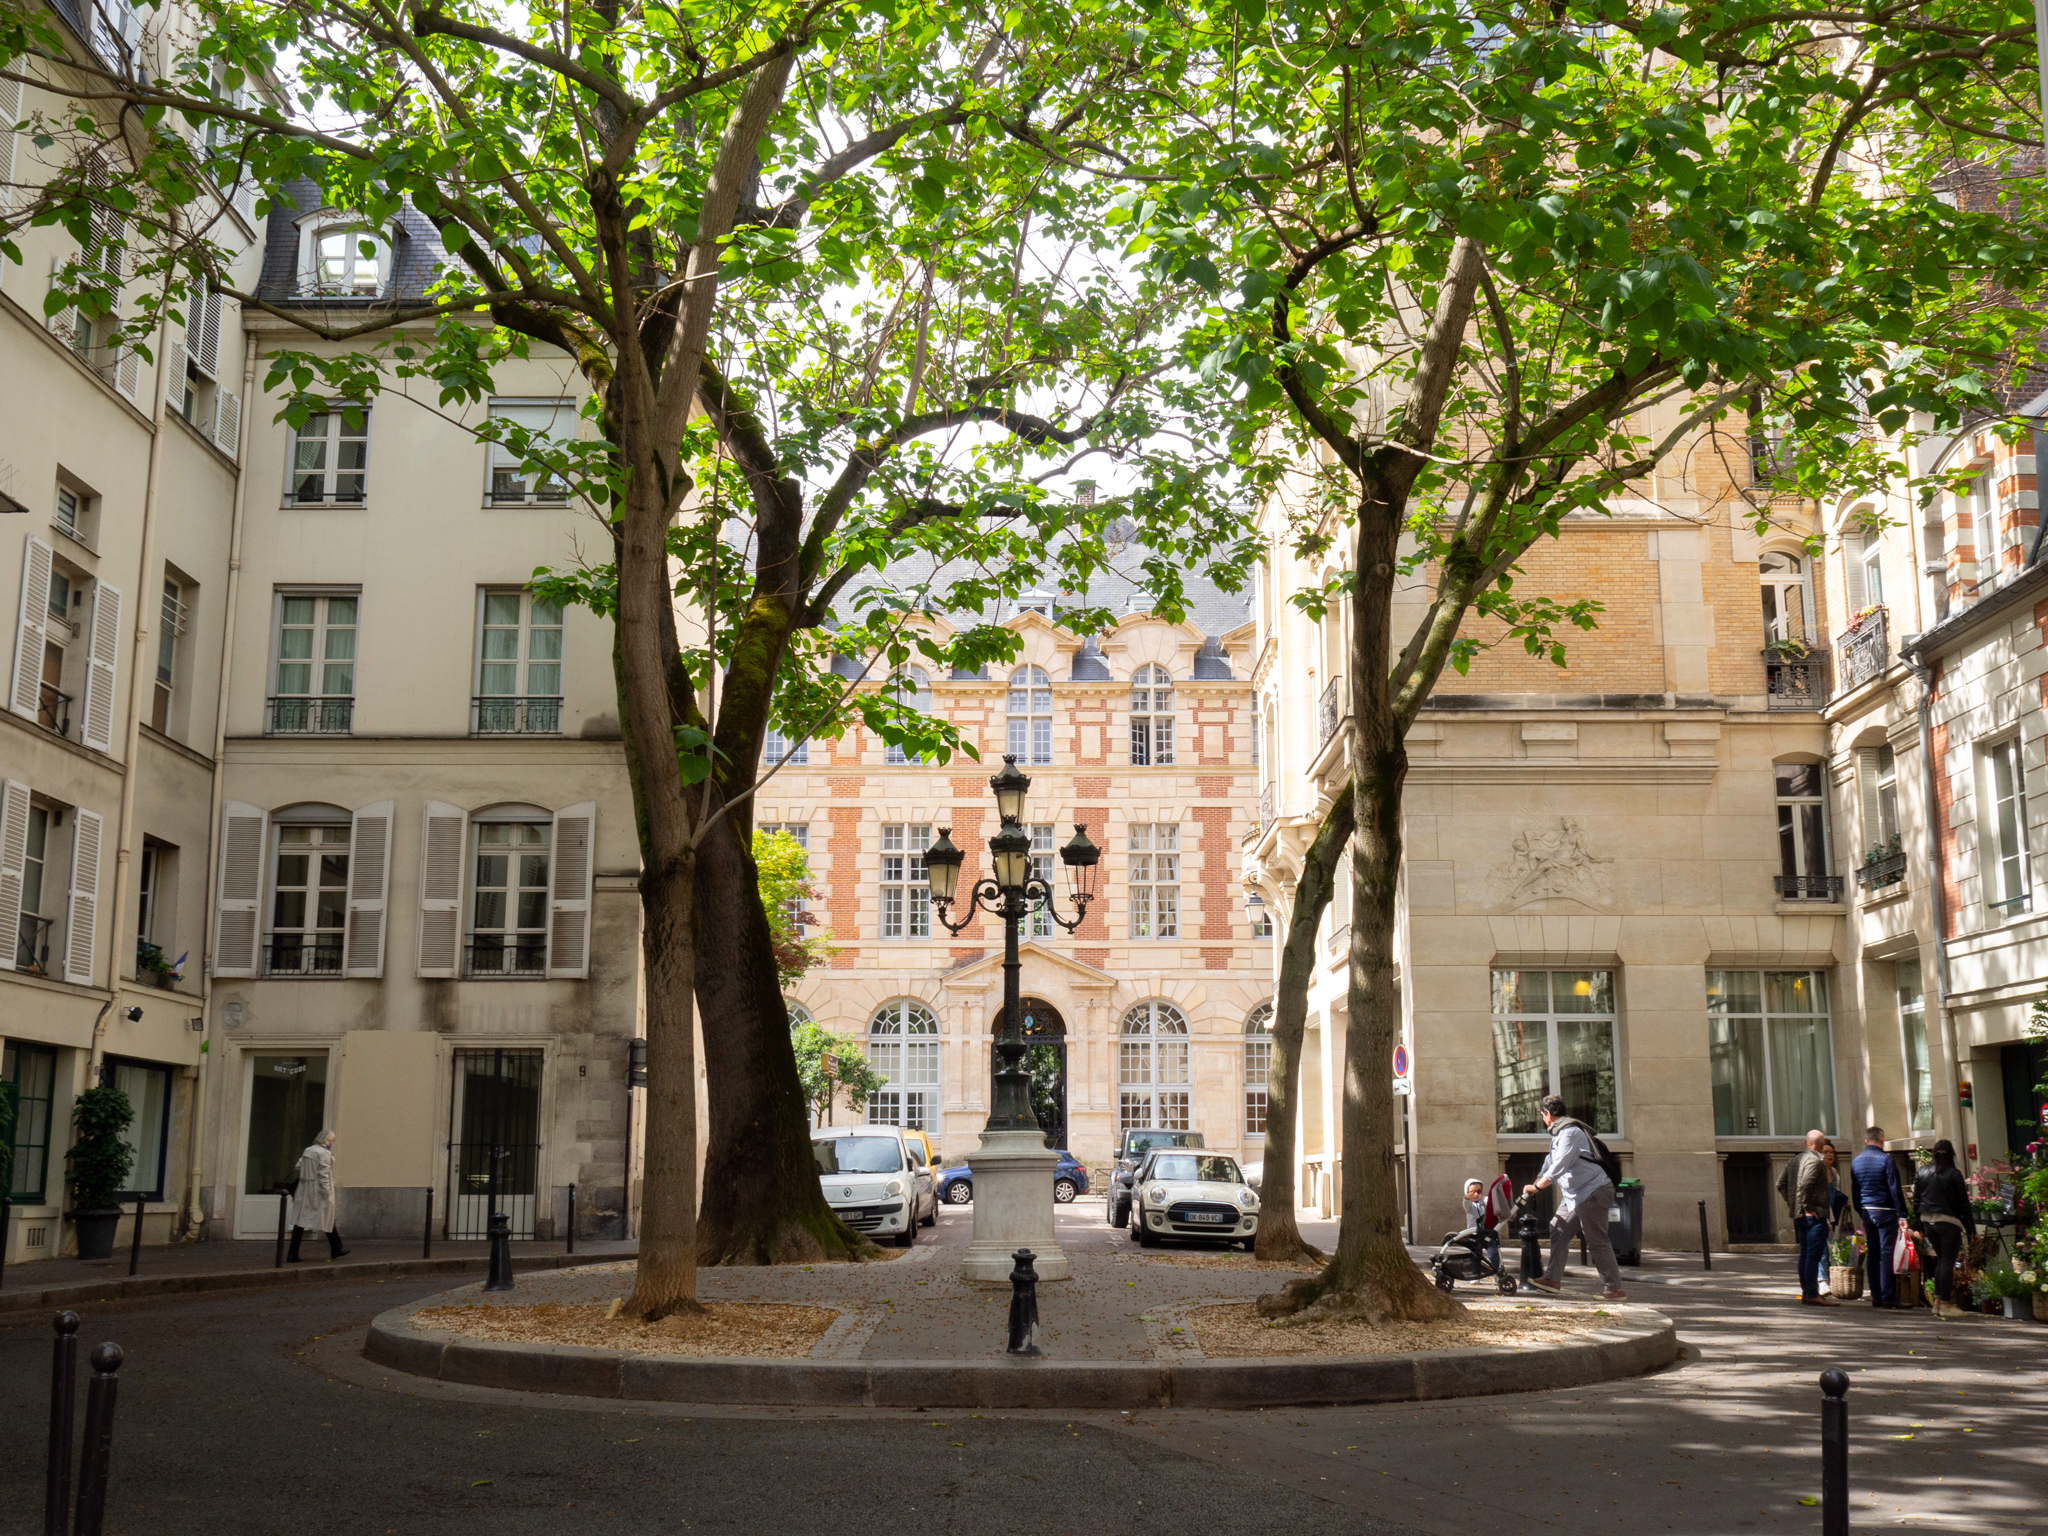 Place de Furstenberg, located in Paris' left bank, on a sunny afternoon.